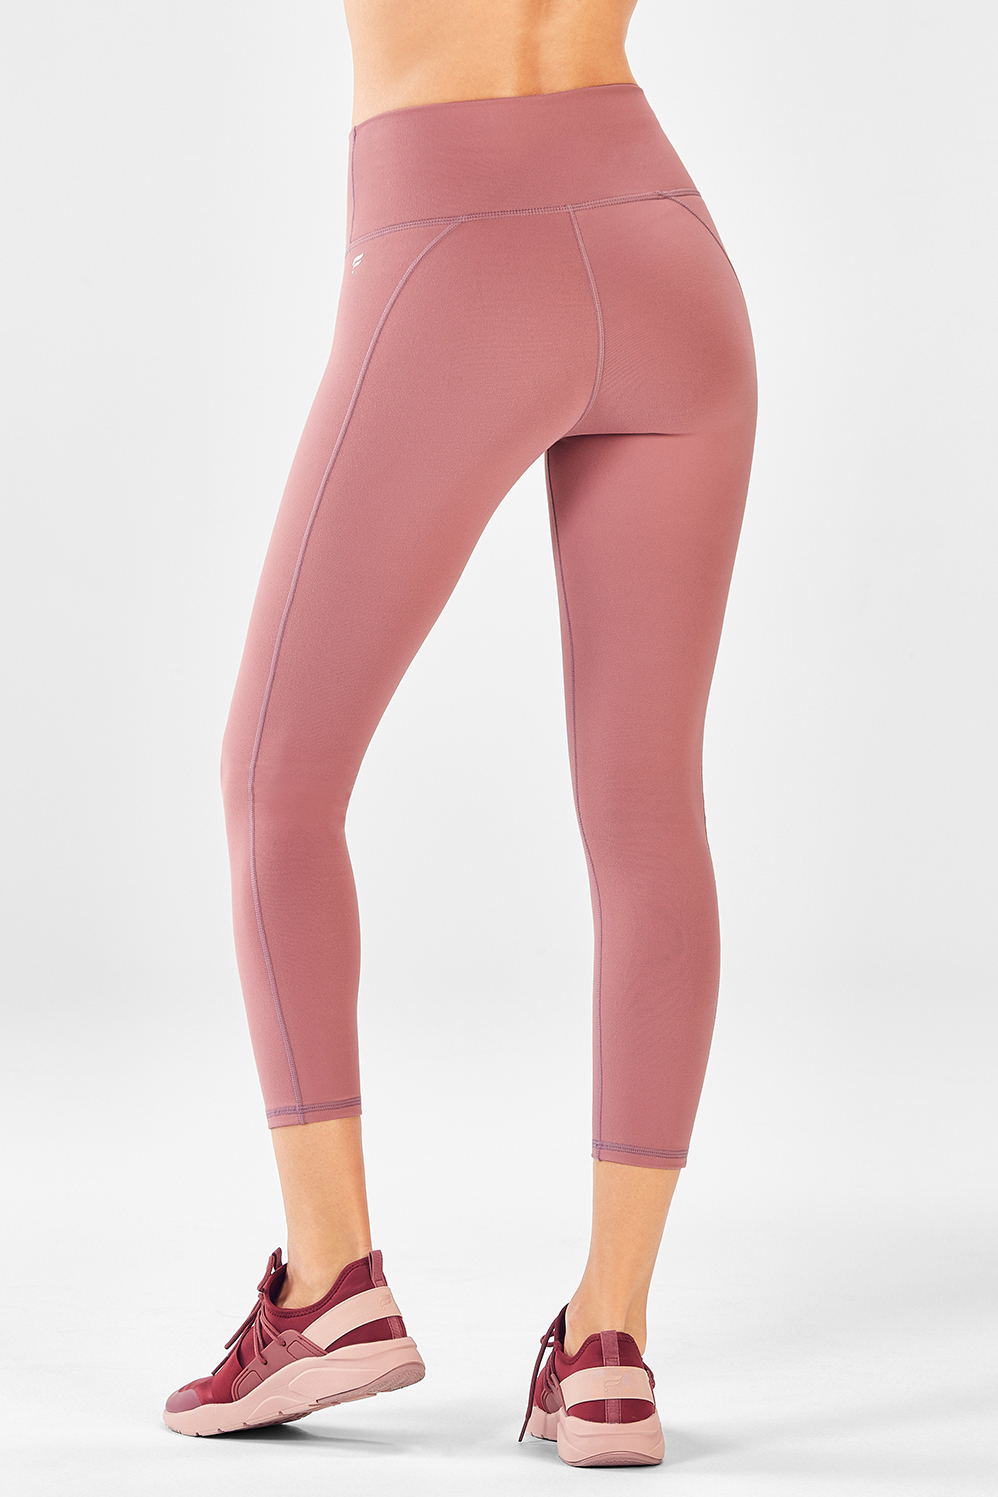 c6f0cf8a329 High-Waisted Solid PowerHold® Capri - Fabletics